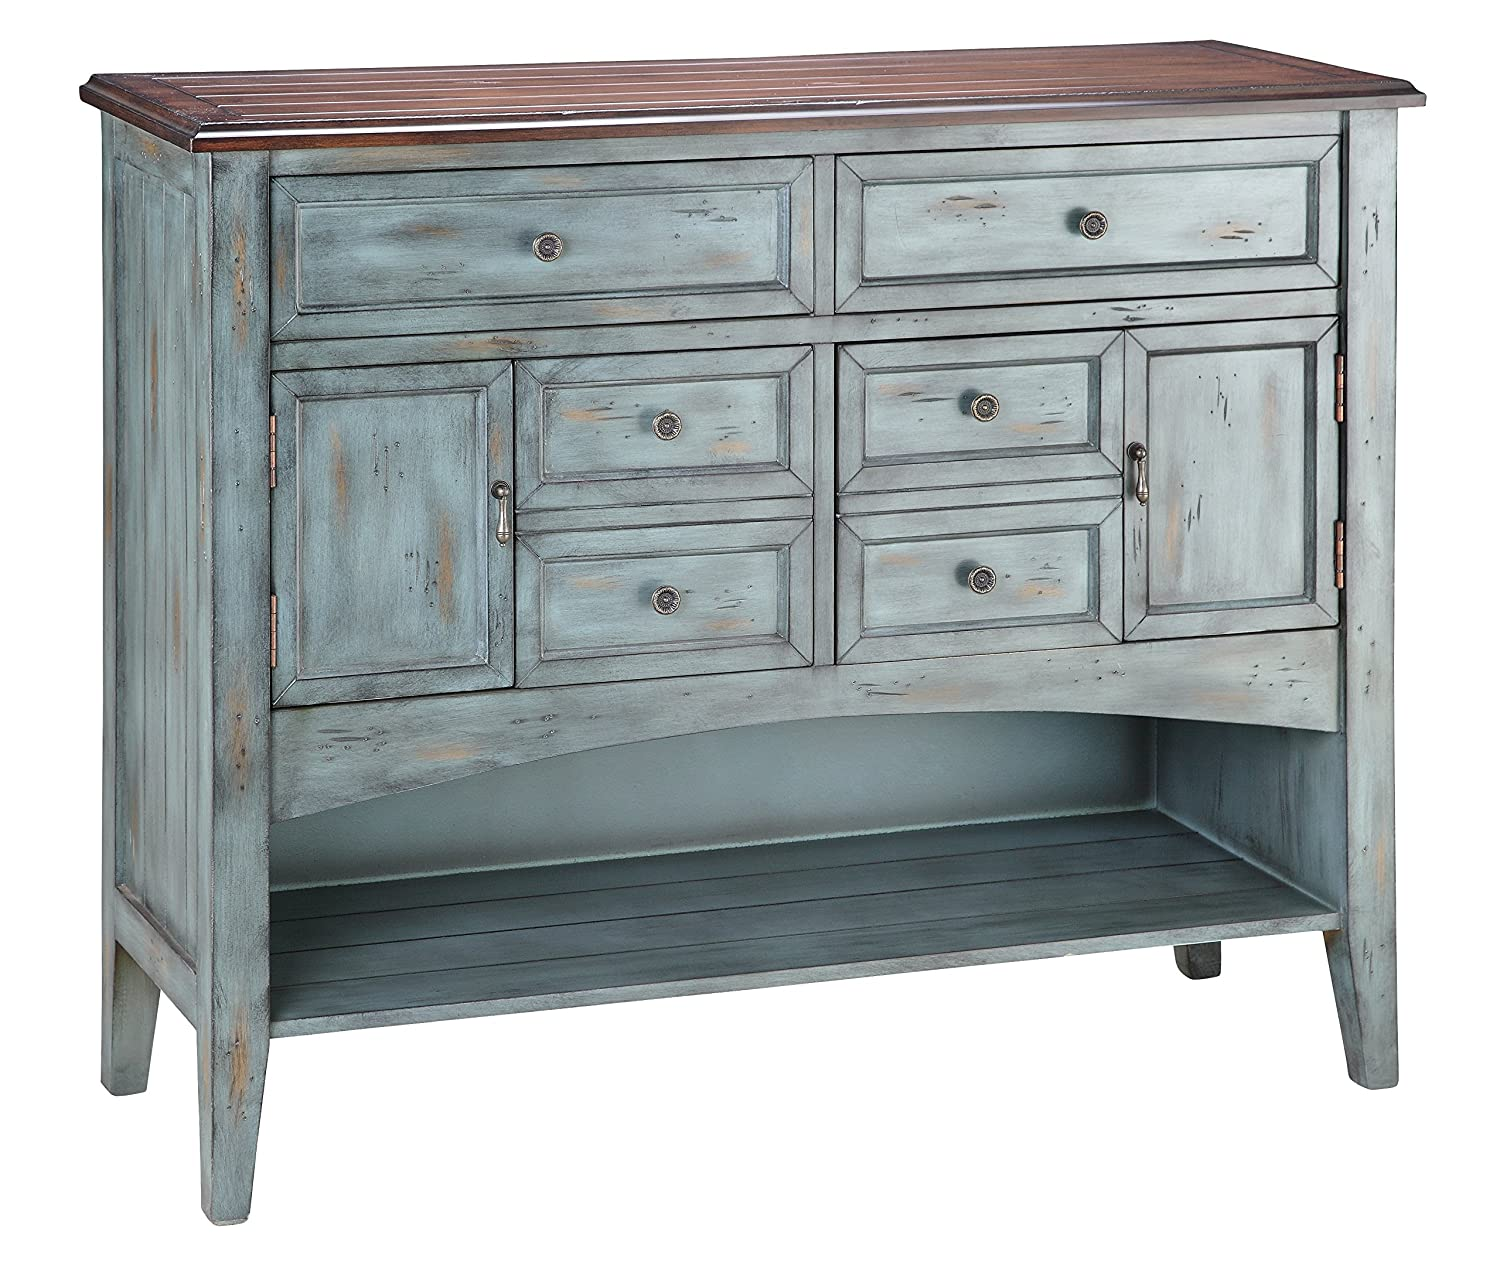 Amazon.com   Stein World Furniture Hartford Buffet/Server, Distressed  Moonstone Antique Blue/Wood Tone   Buffets U0026 Sideboards